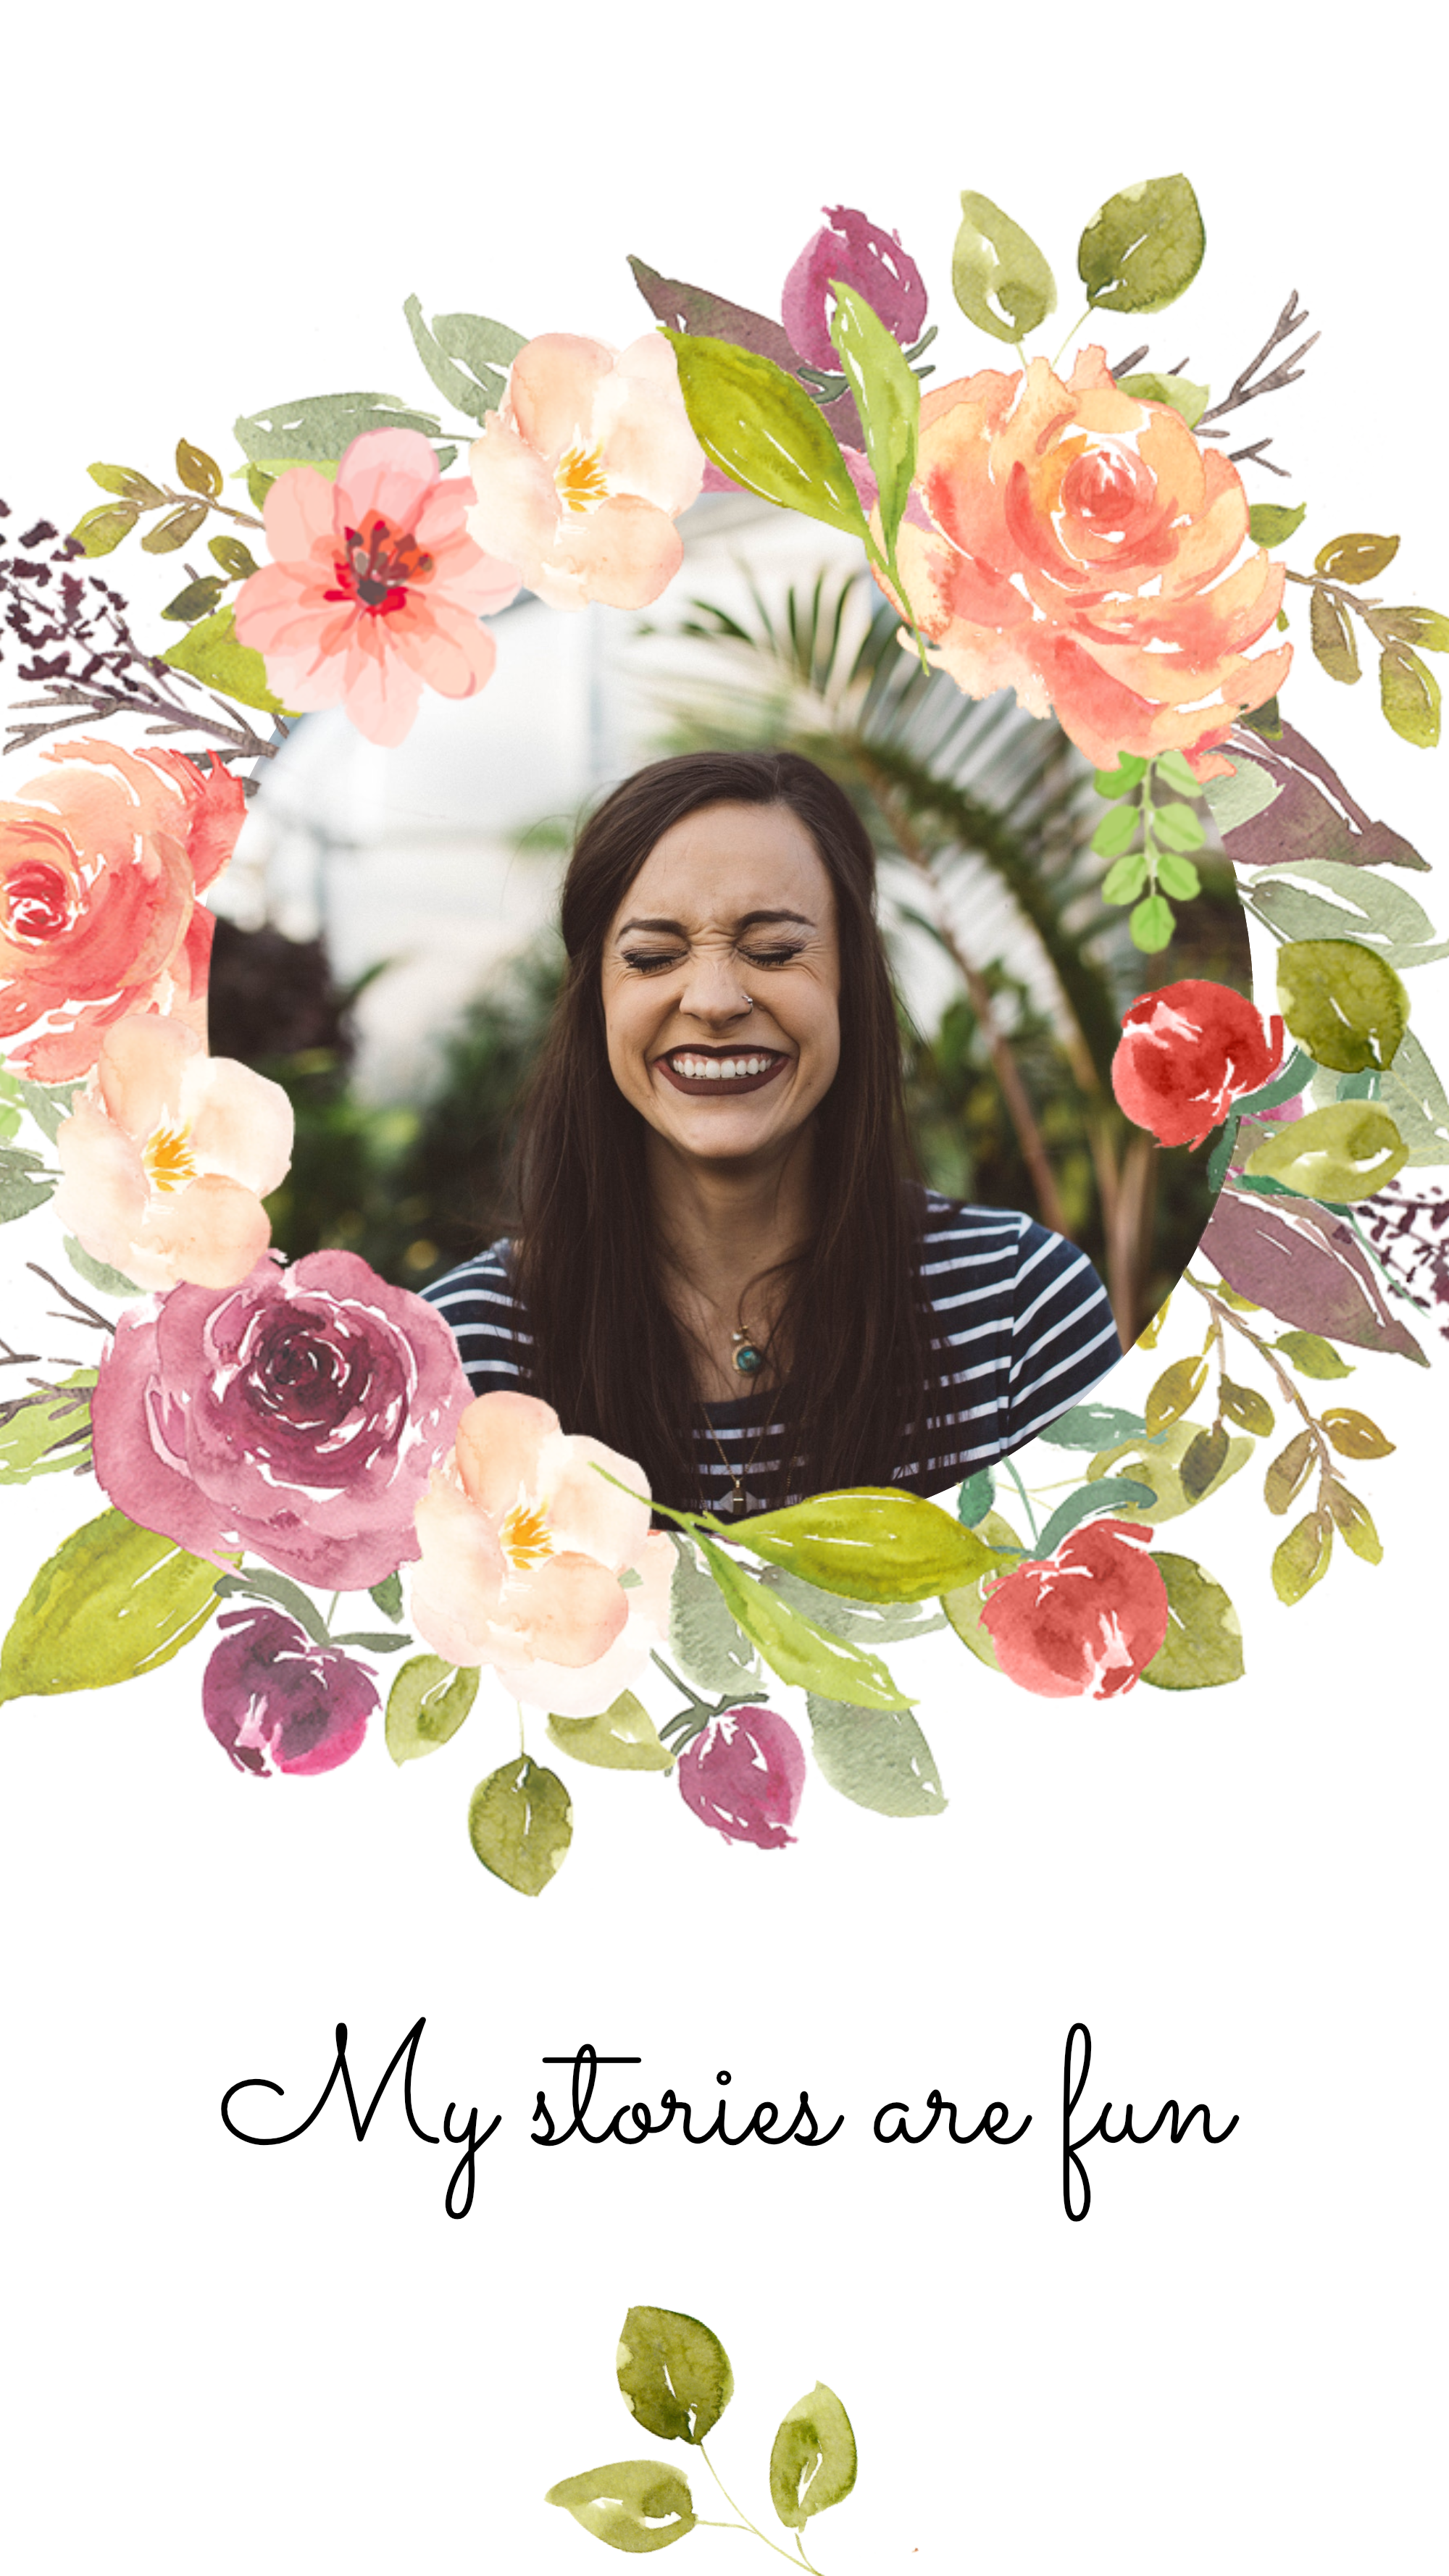 #pastelflowers collection - My stories are fun Instagram Story Template